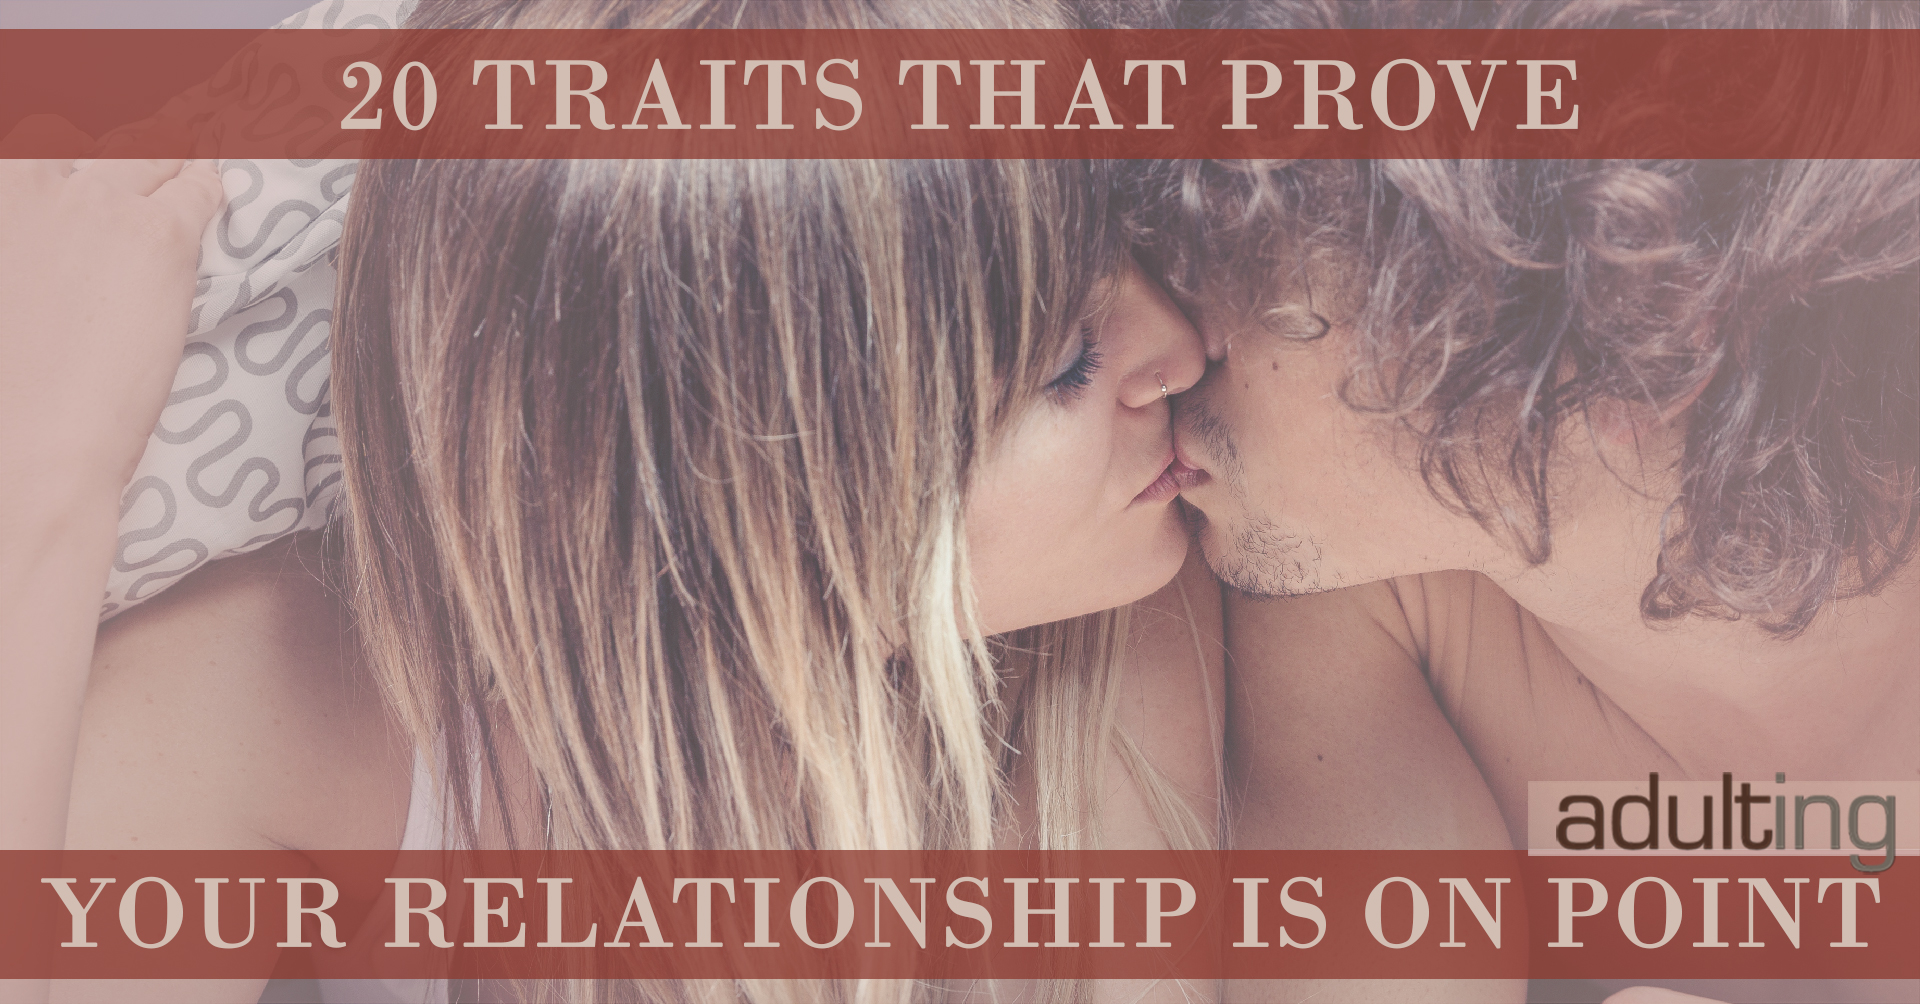 20 Traits That Prove Your Relationship Is On Point